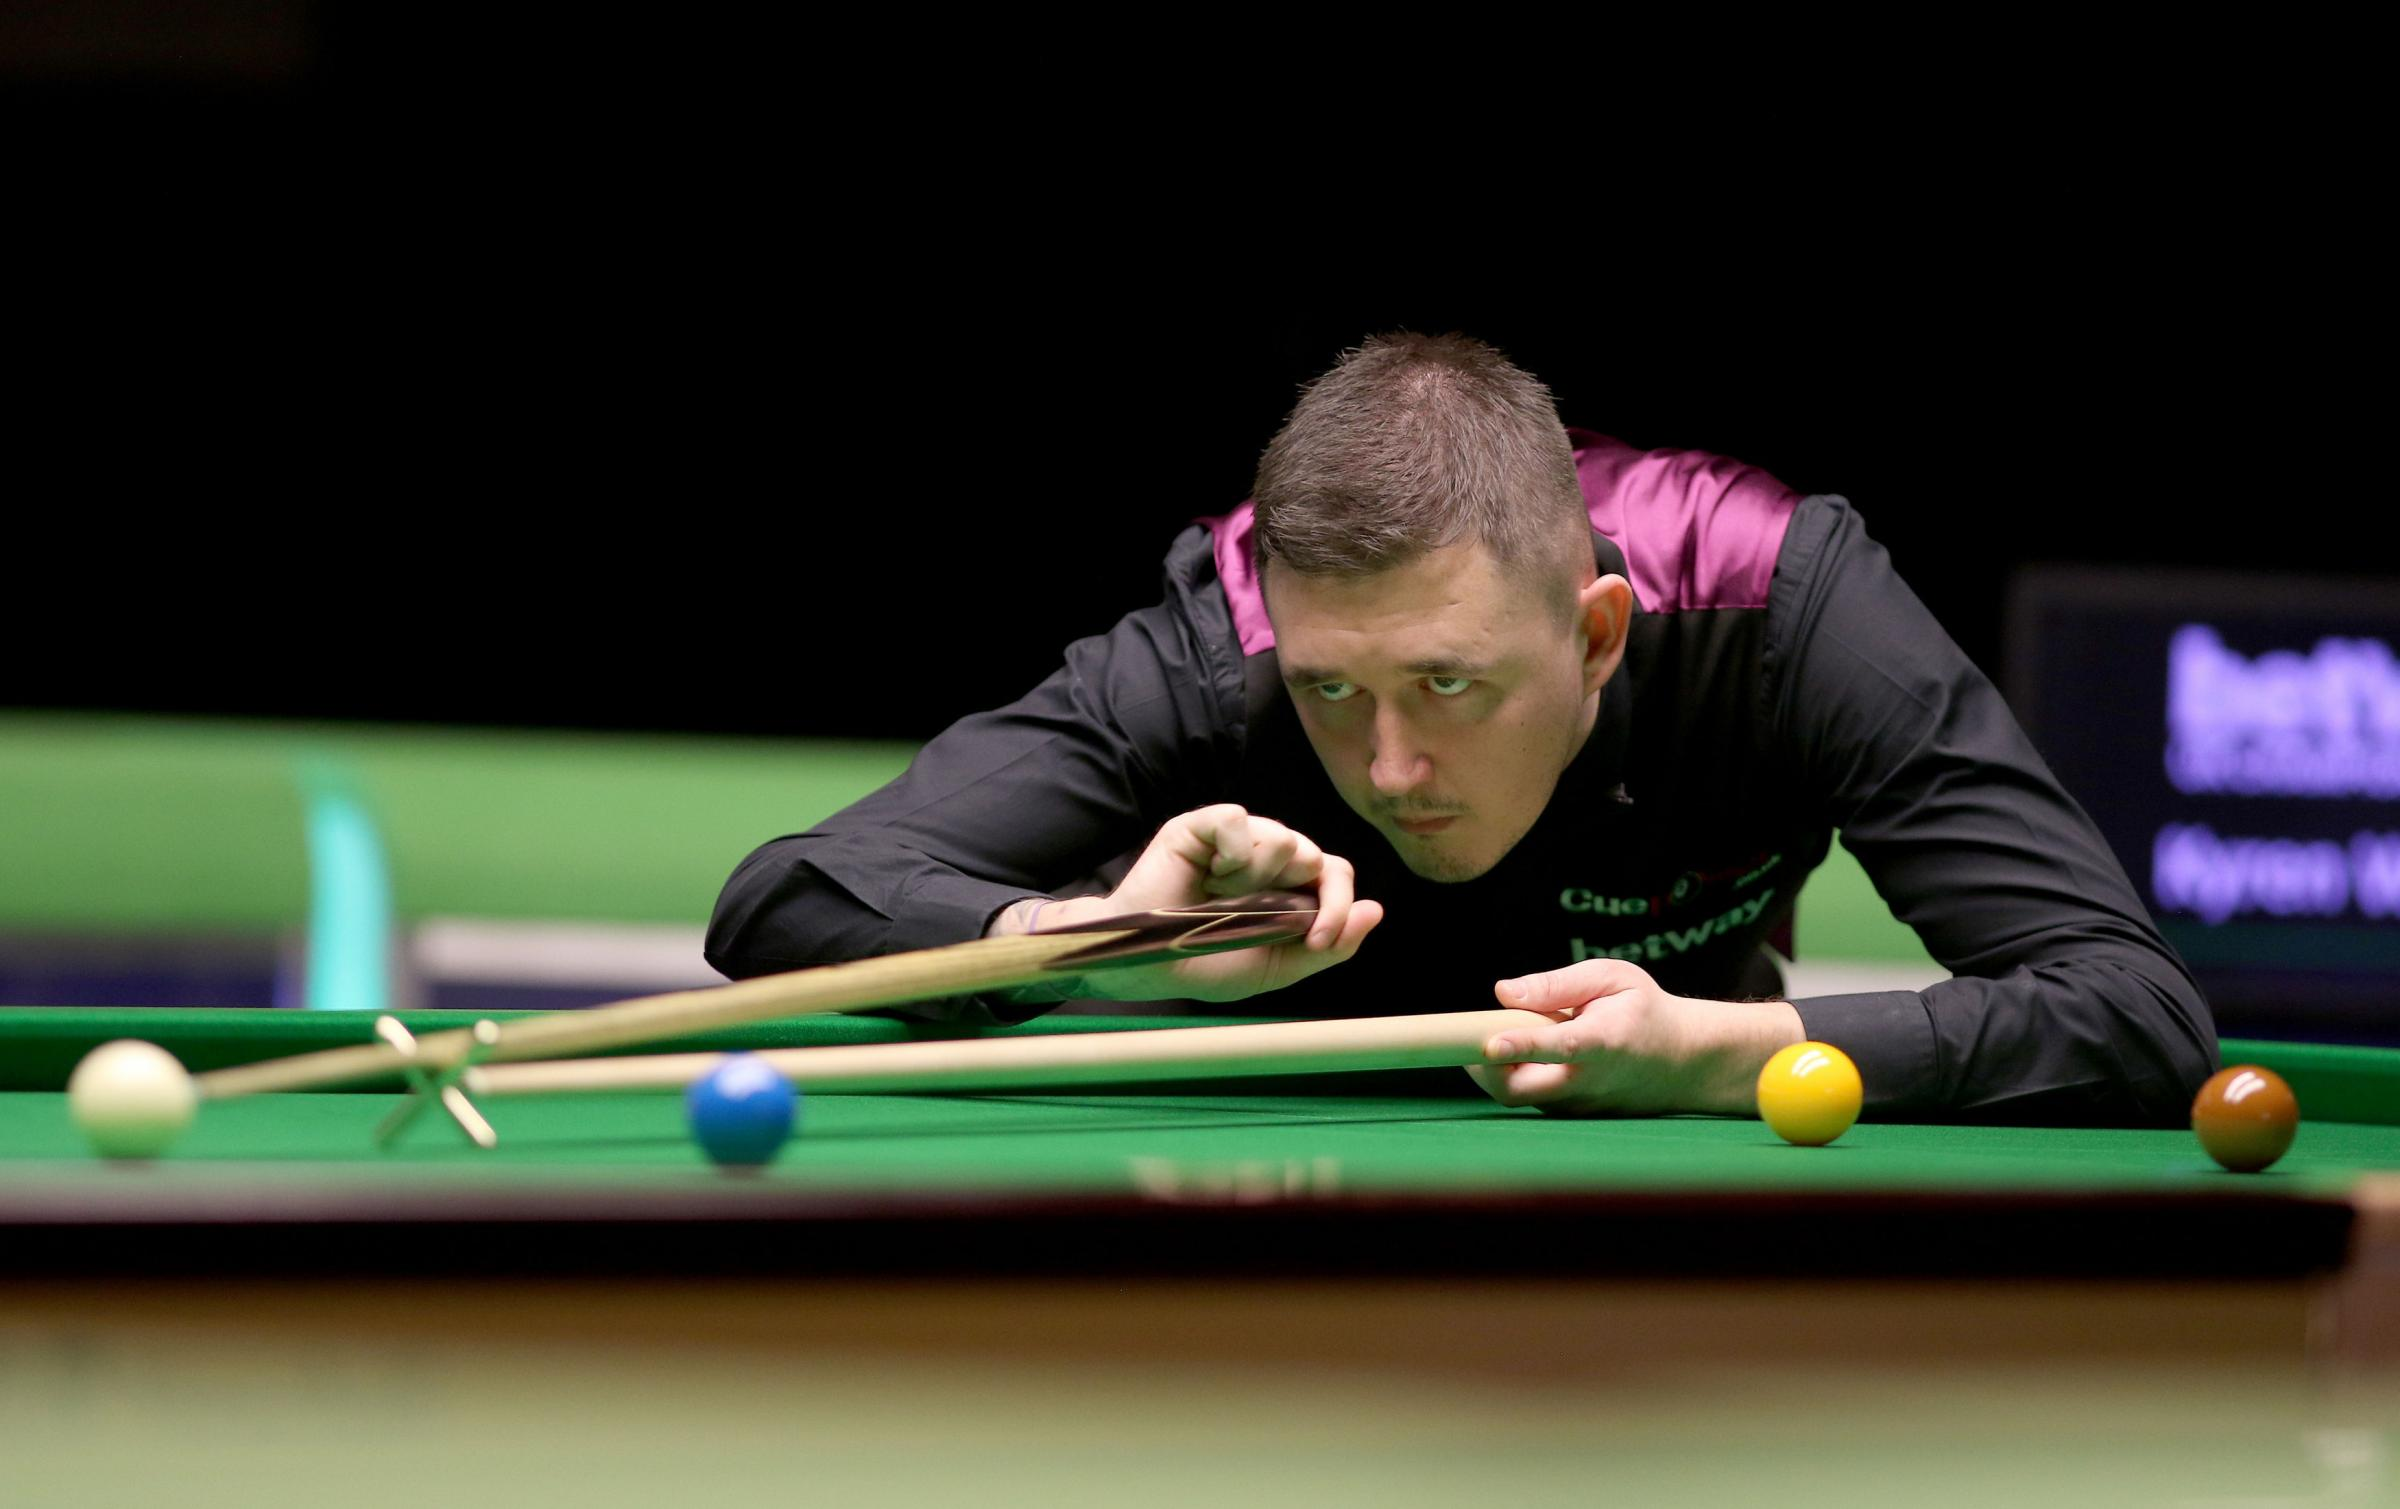 Kyren Wilson was another high-ranking star to crash out of this year's Betway UK Championship at the Barbican